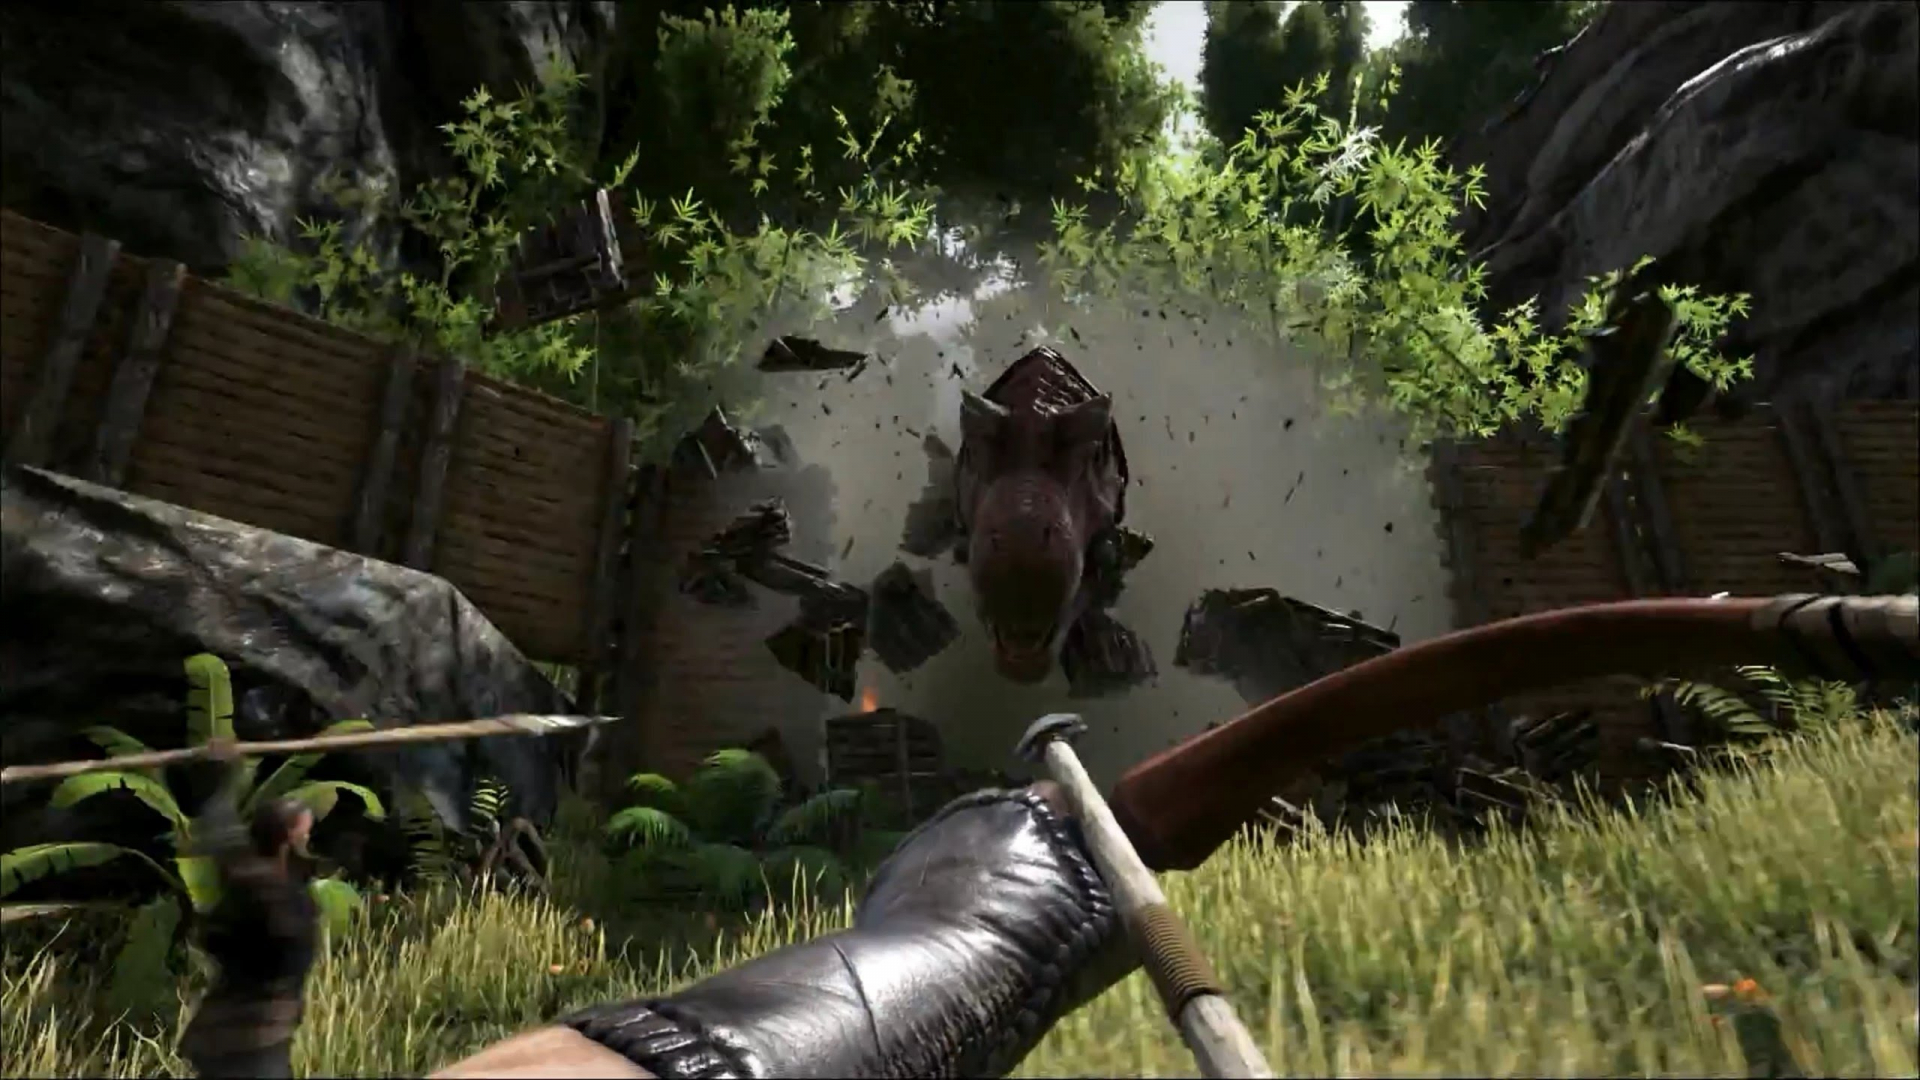 Free Download Hd Ark Survival Evolved Wallpaper Full Hd Pictures